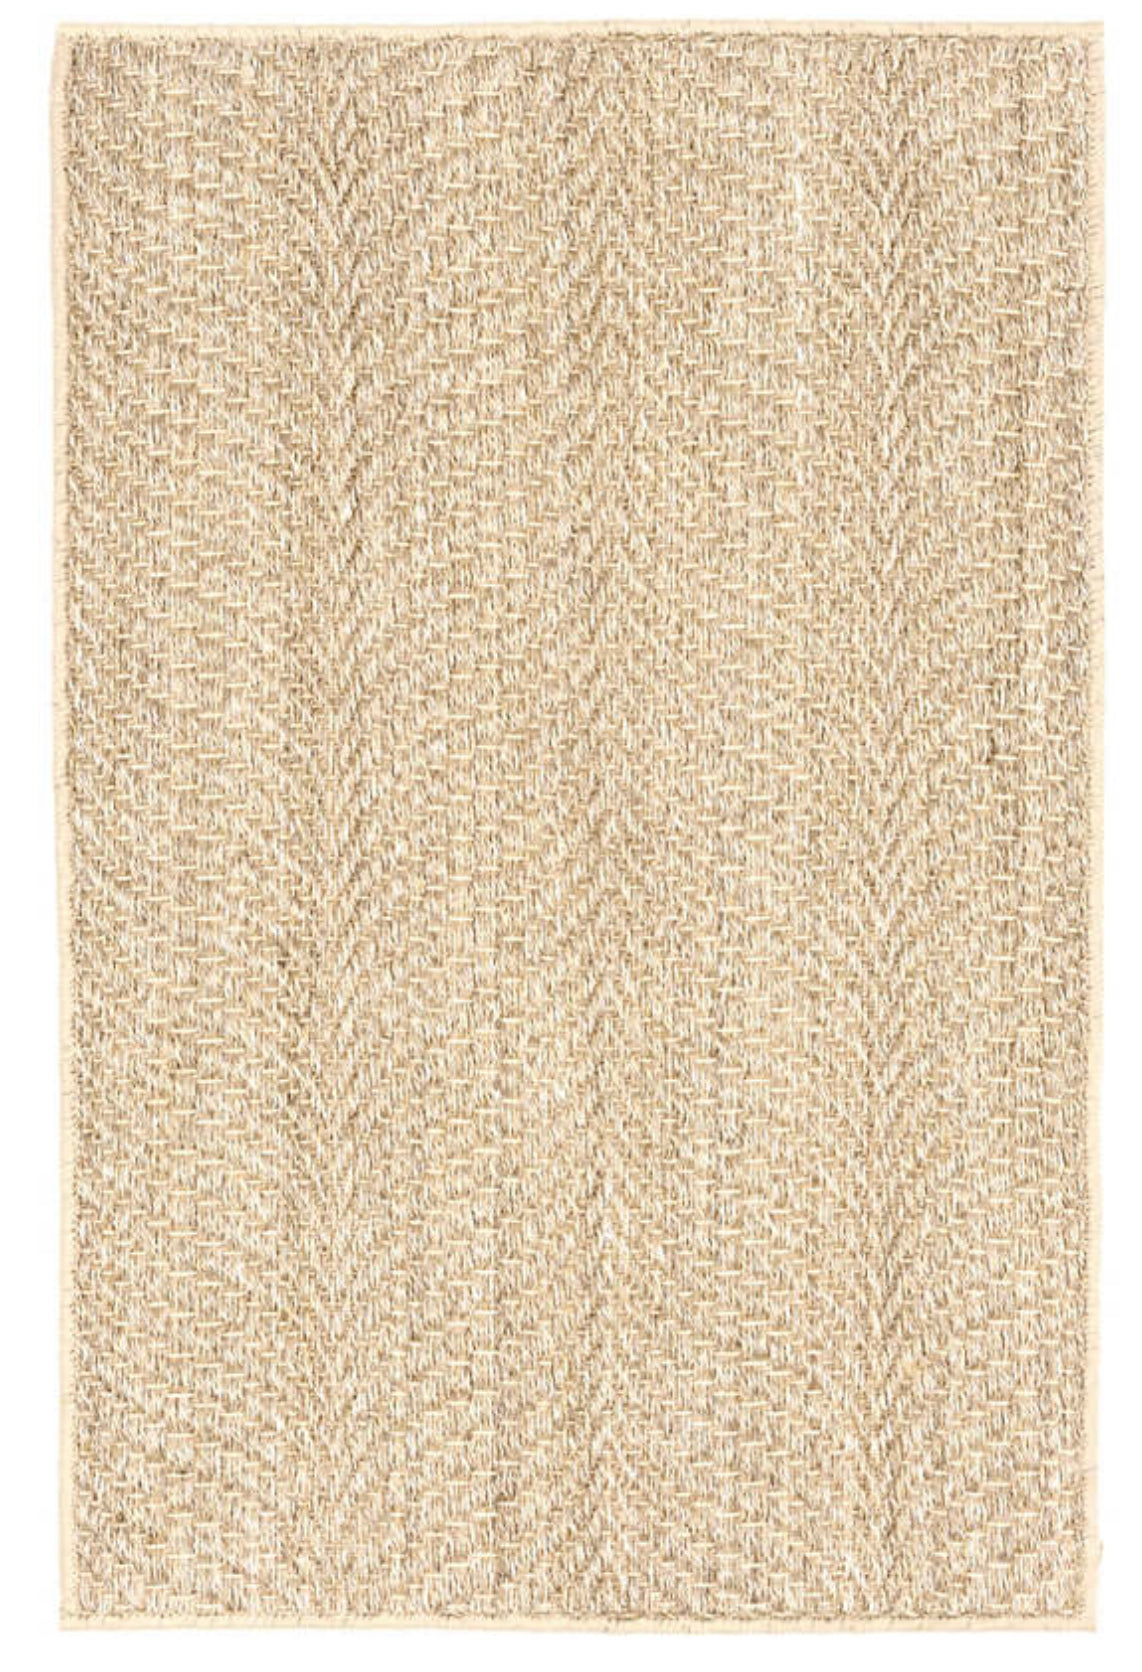 Wave Sisal Rug | Color: Sand | 8' x 10'